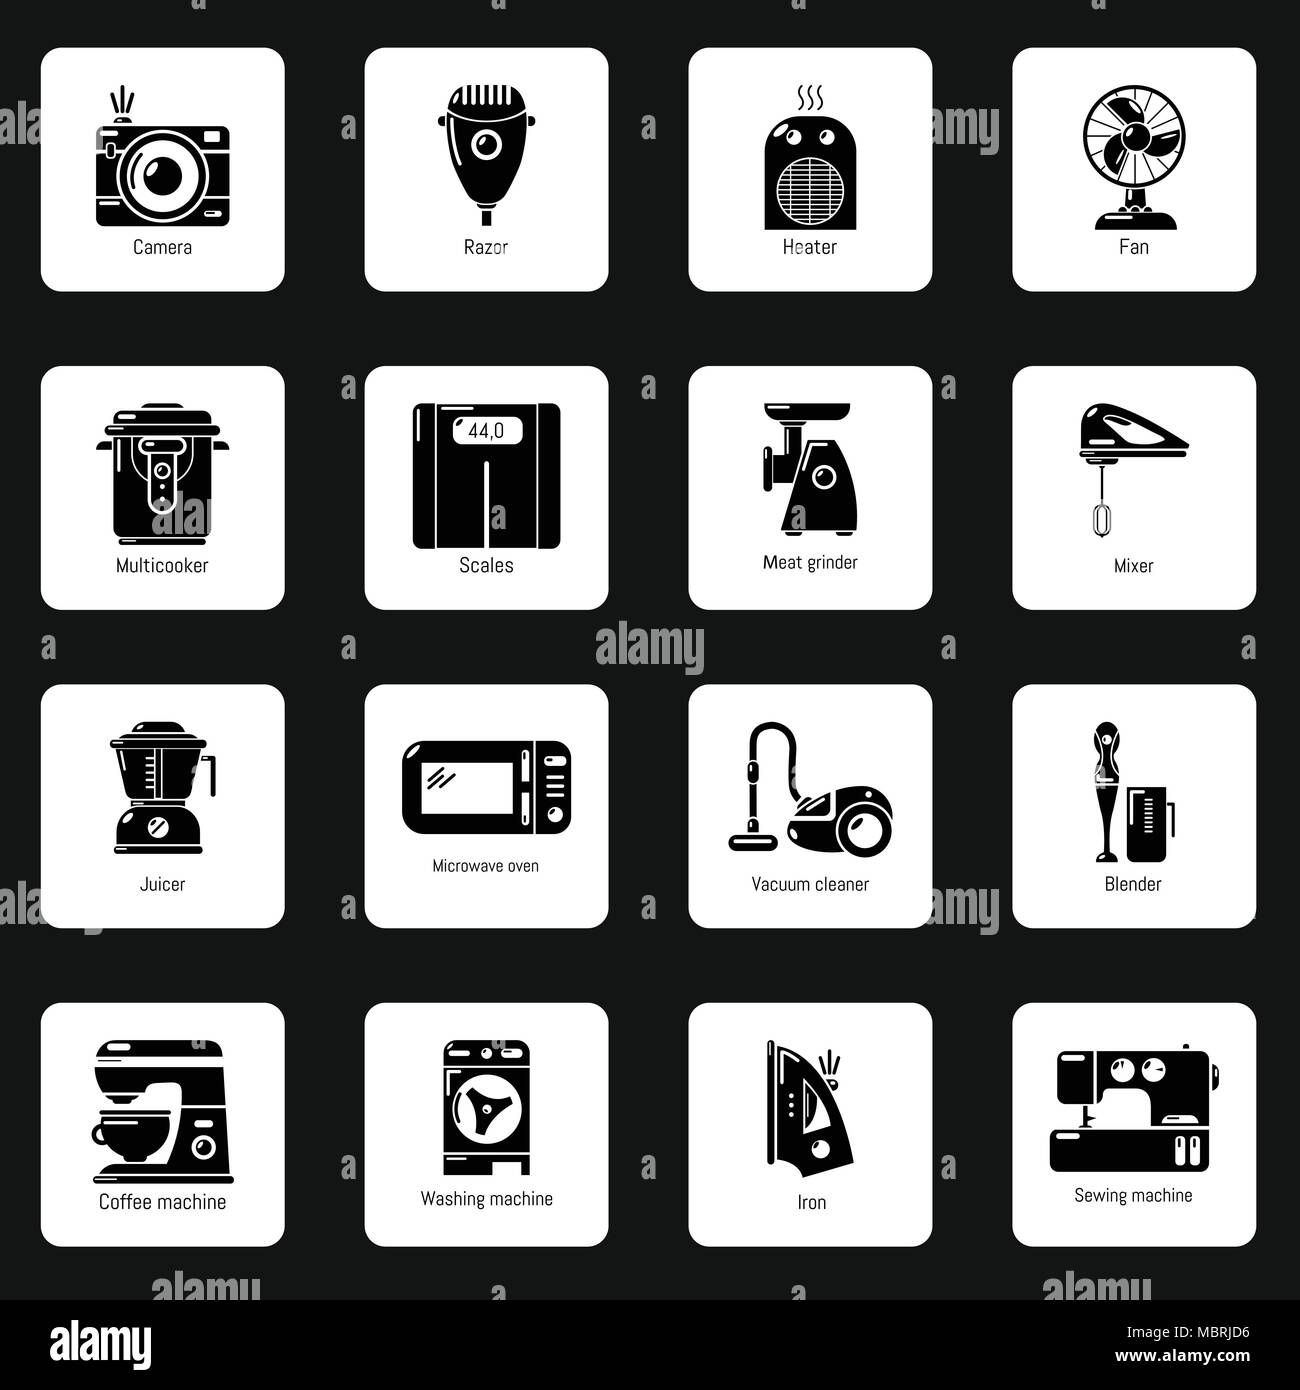 Domestic appliances icons set, simple style - Stock Image